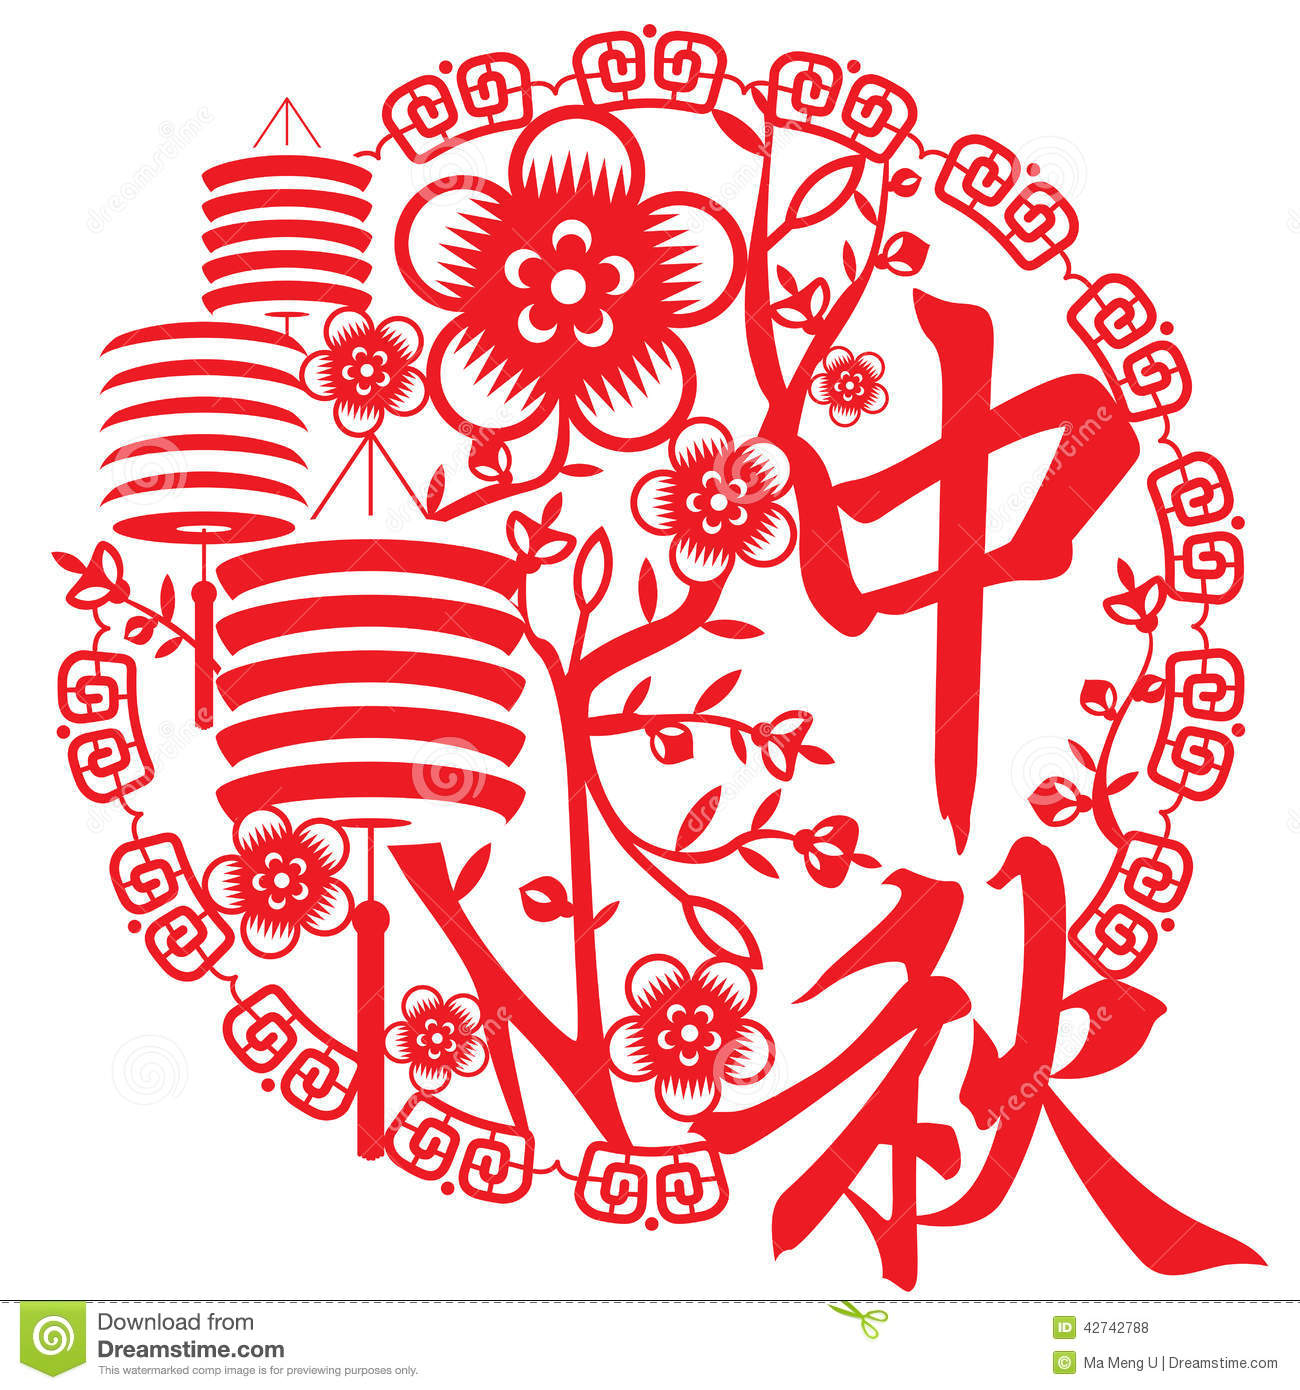 chinese moon festival essay Chinese moon festival essay august 20, 2017  in china we besides have household reunion yearss and the moon festival is one of them the moon festival is besides known as mid-autumn festival or the zhongqiu festival of class this festival has equivalents in other states such as japan malaysia.